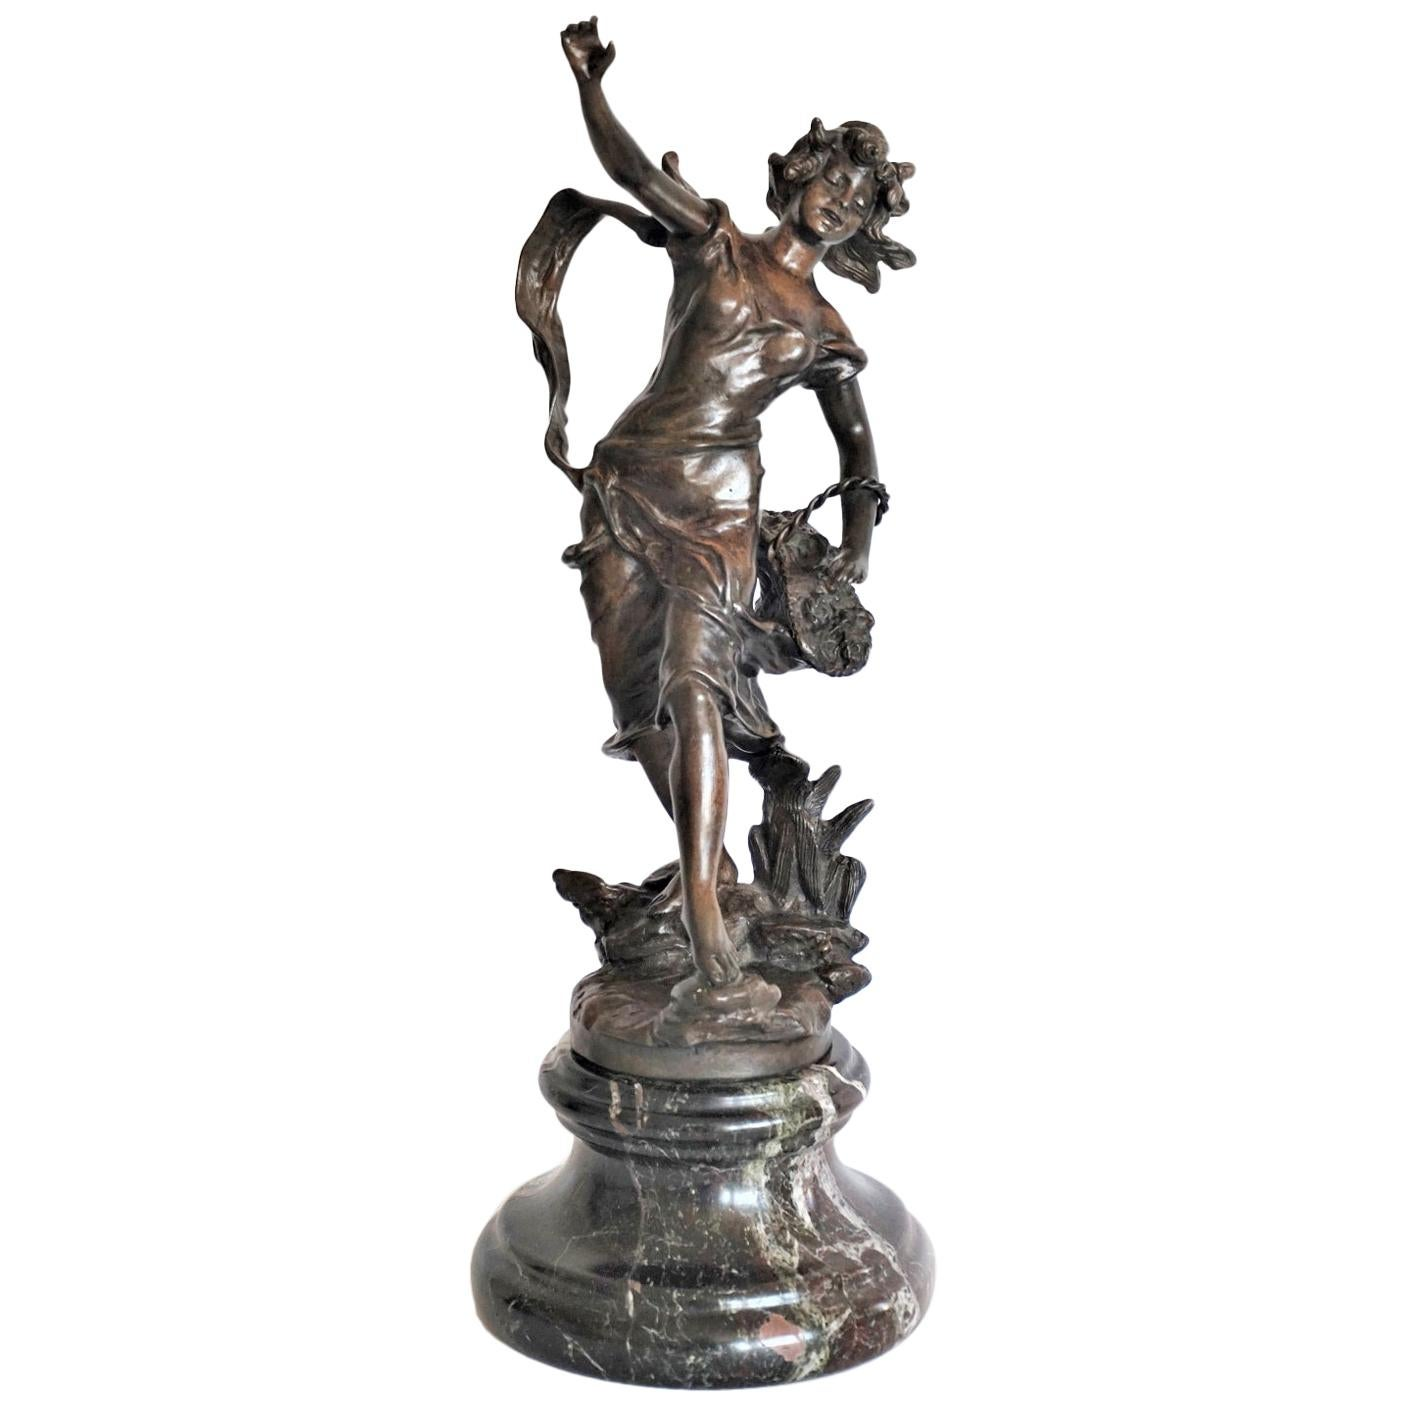 Patinated Bronze Sculpture on Marble Base, Signed Geo Maxim